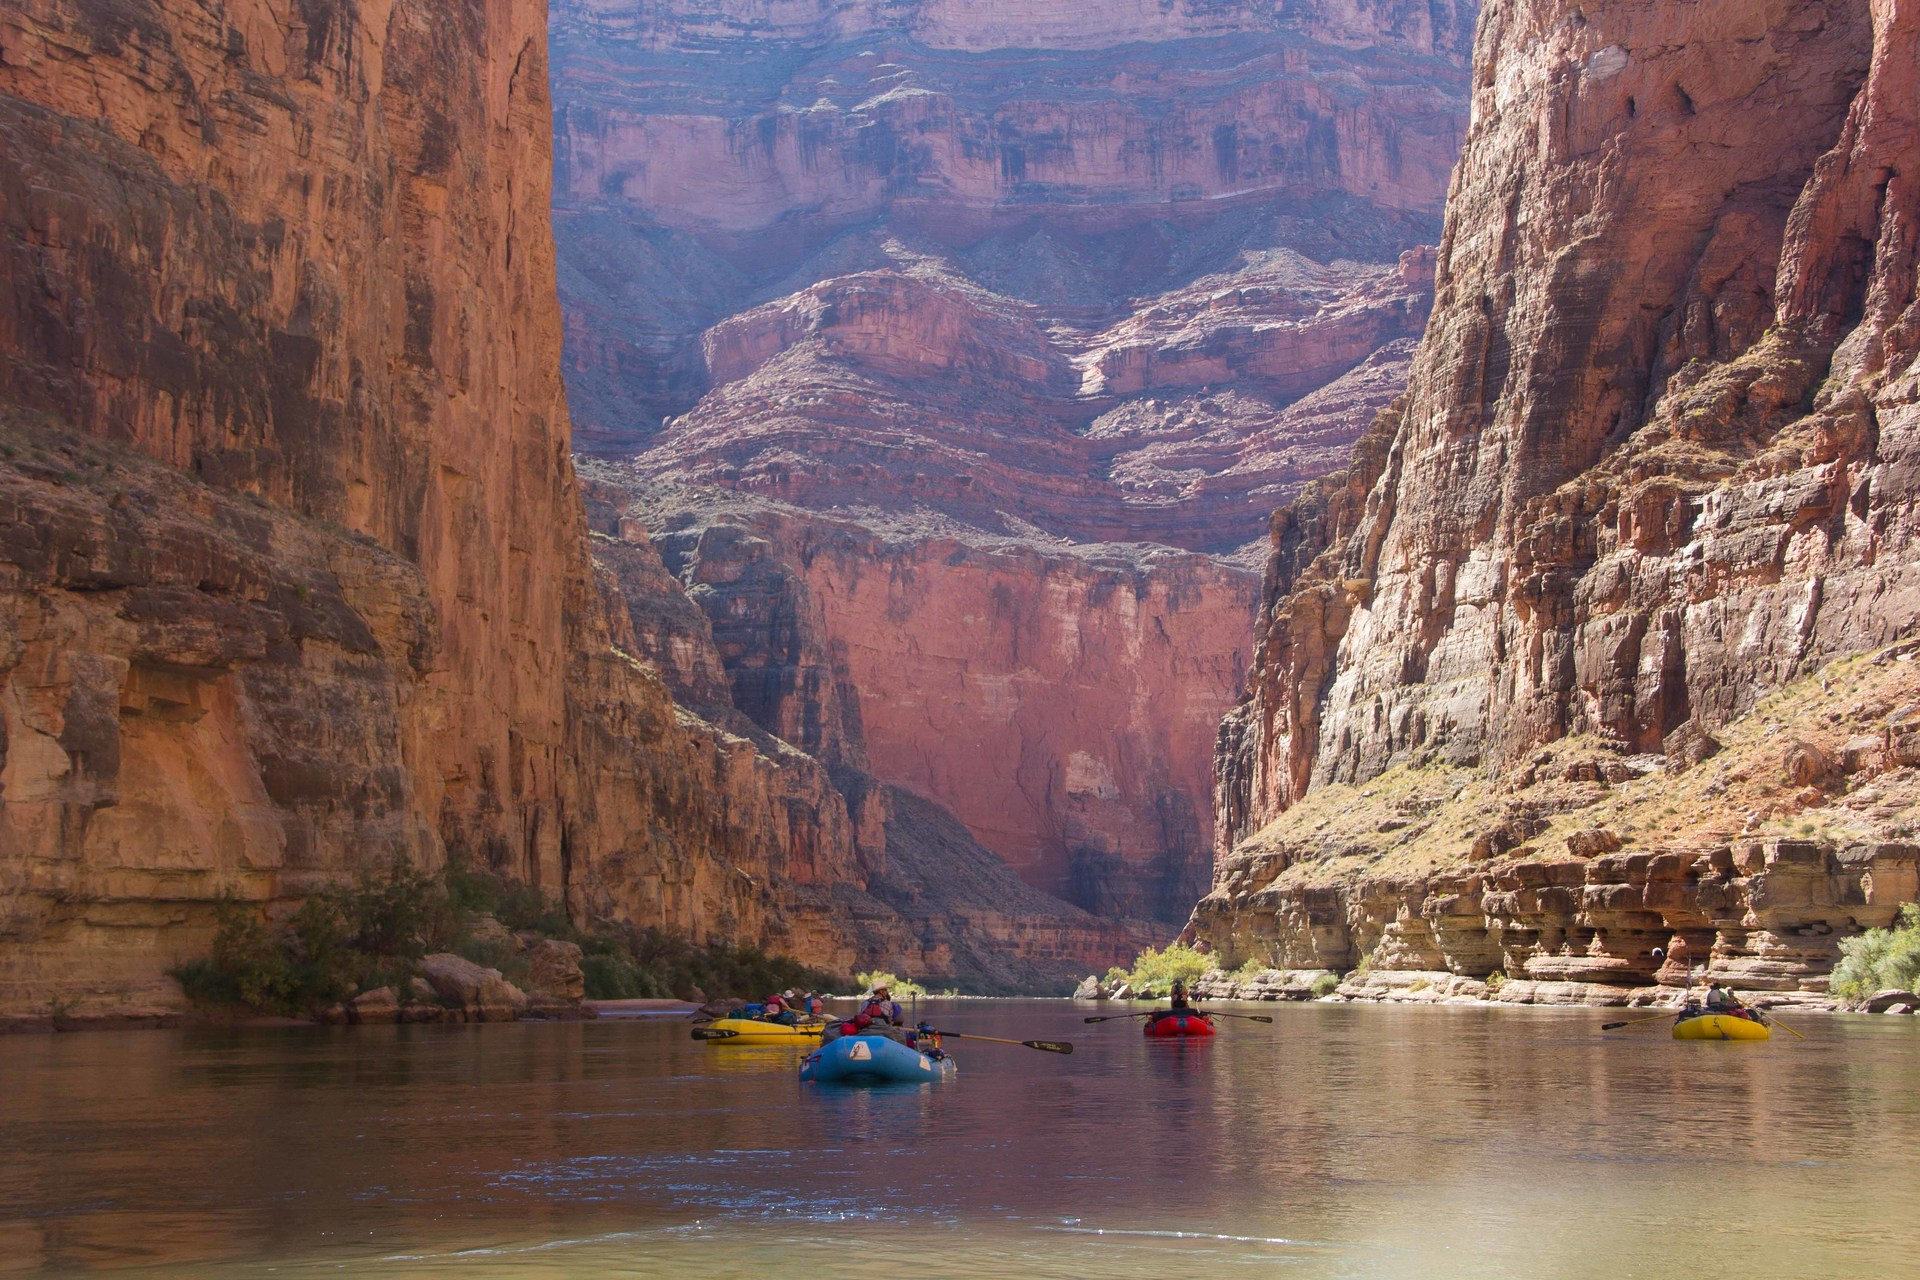 The Grand Canyon of the Colorado River | Outdoor Project